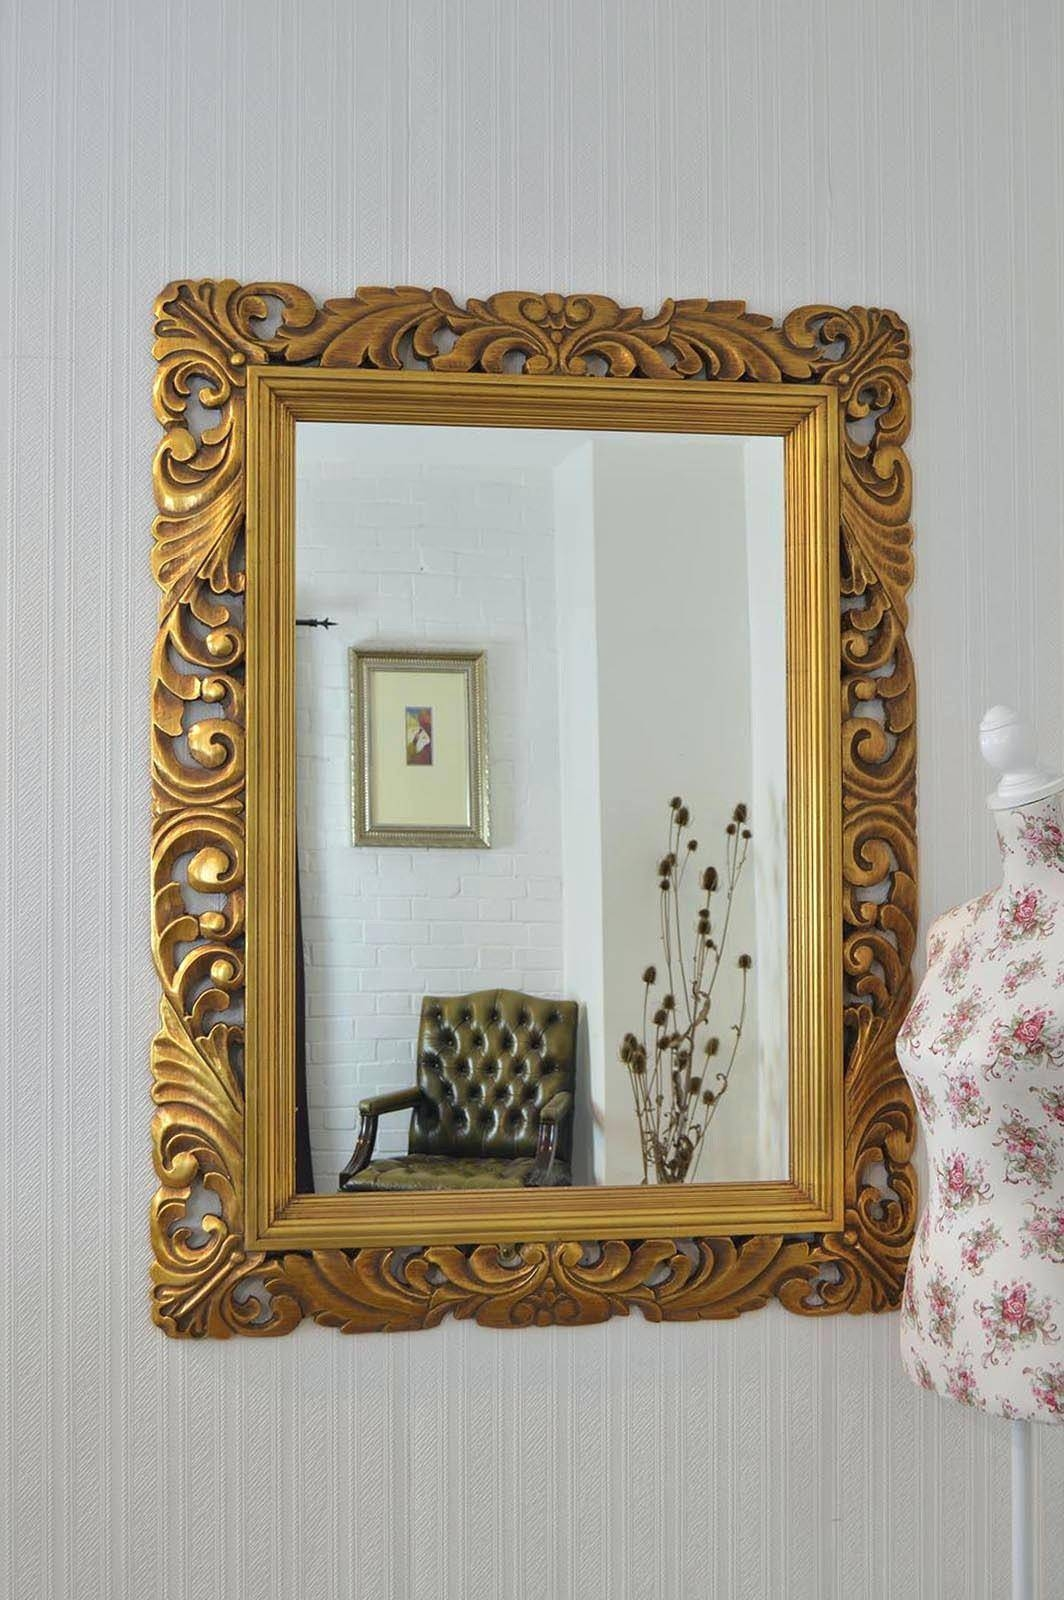 Lightbox Moreviewlarge Antique Gold Wall Mirror Large Framed Pertaining To Large Antique Gold Mirrors (View 22 of 25)